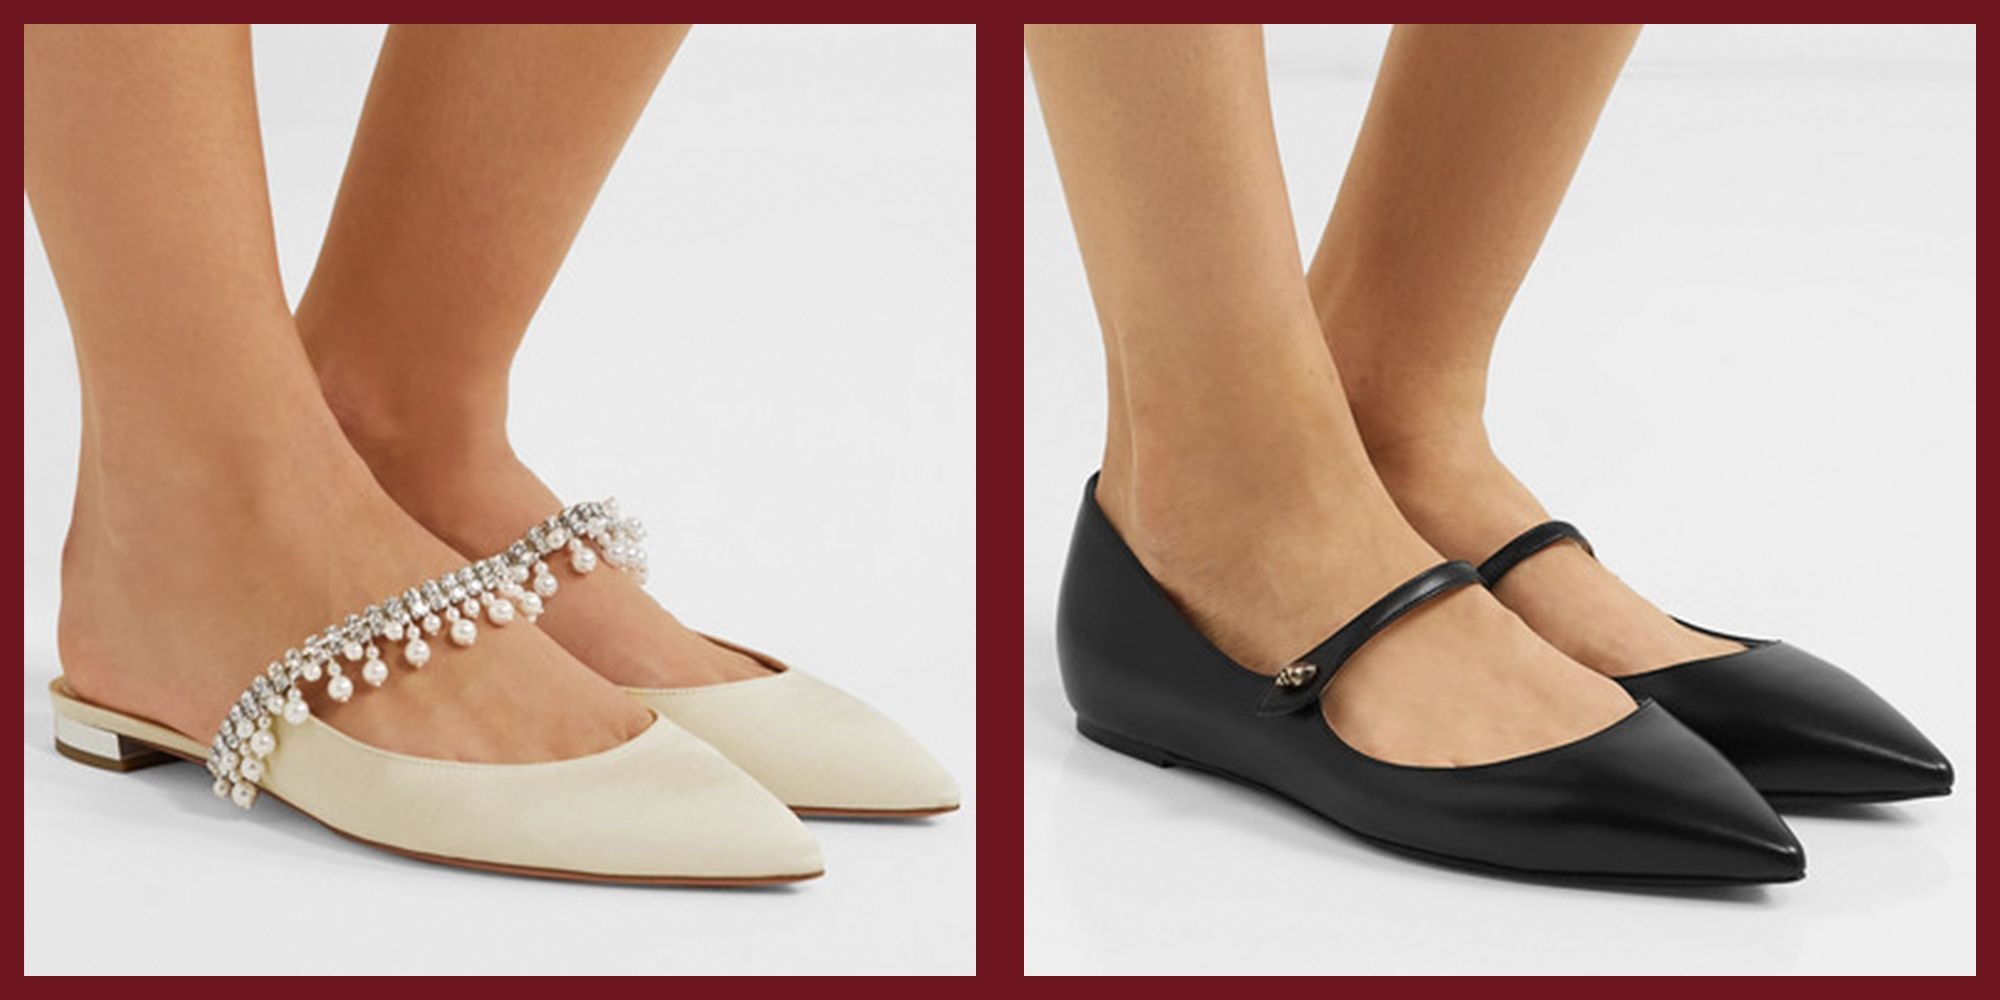 The 9 Best Mary Jane Shoes to Wear This